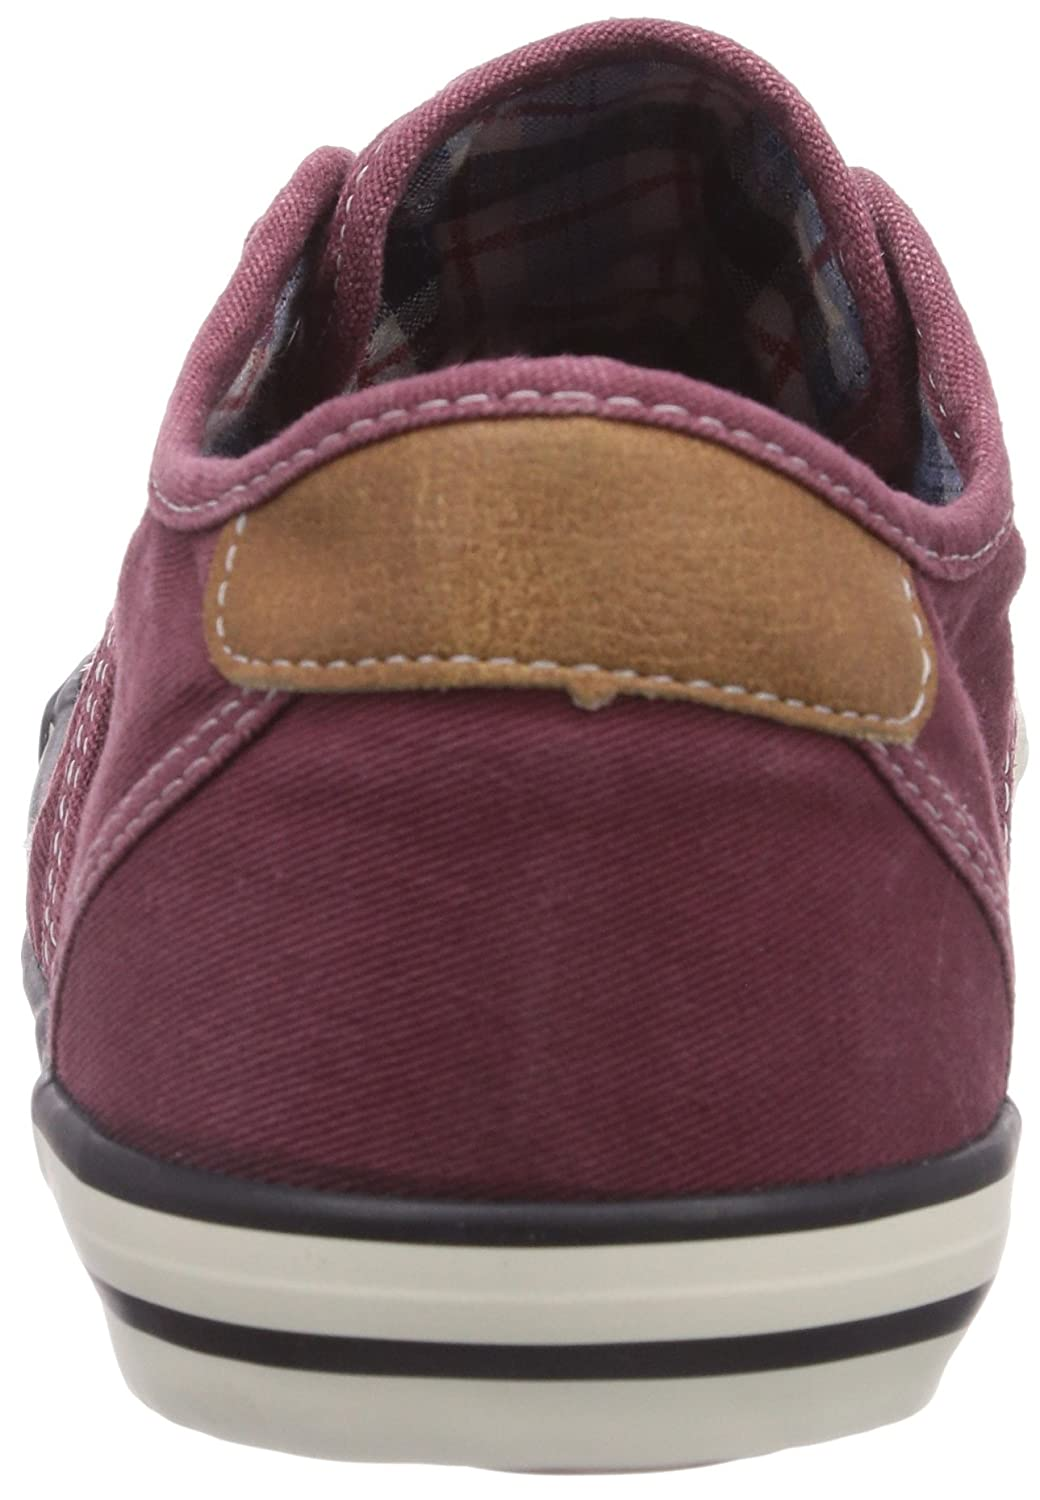 Femme 1099 302 Mustang 55Chaussons Sneaker f7gI6yYvb